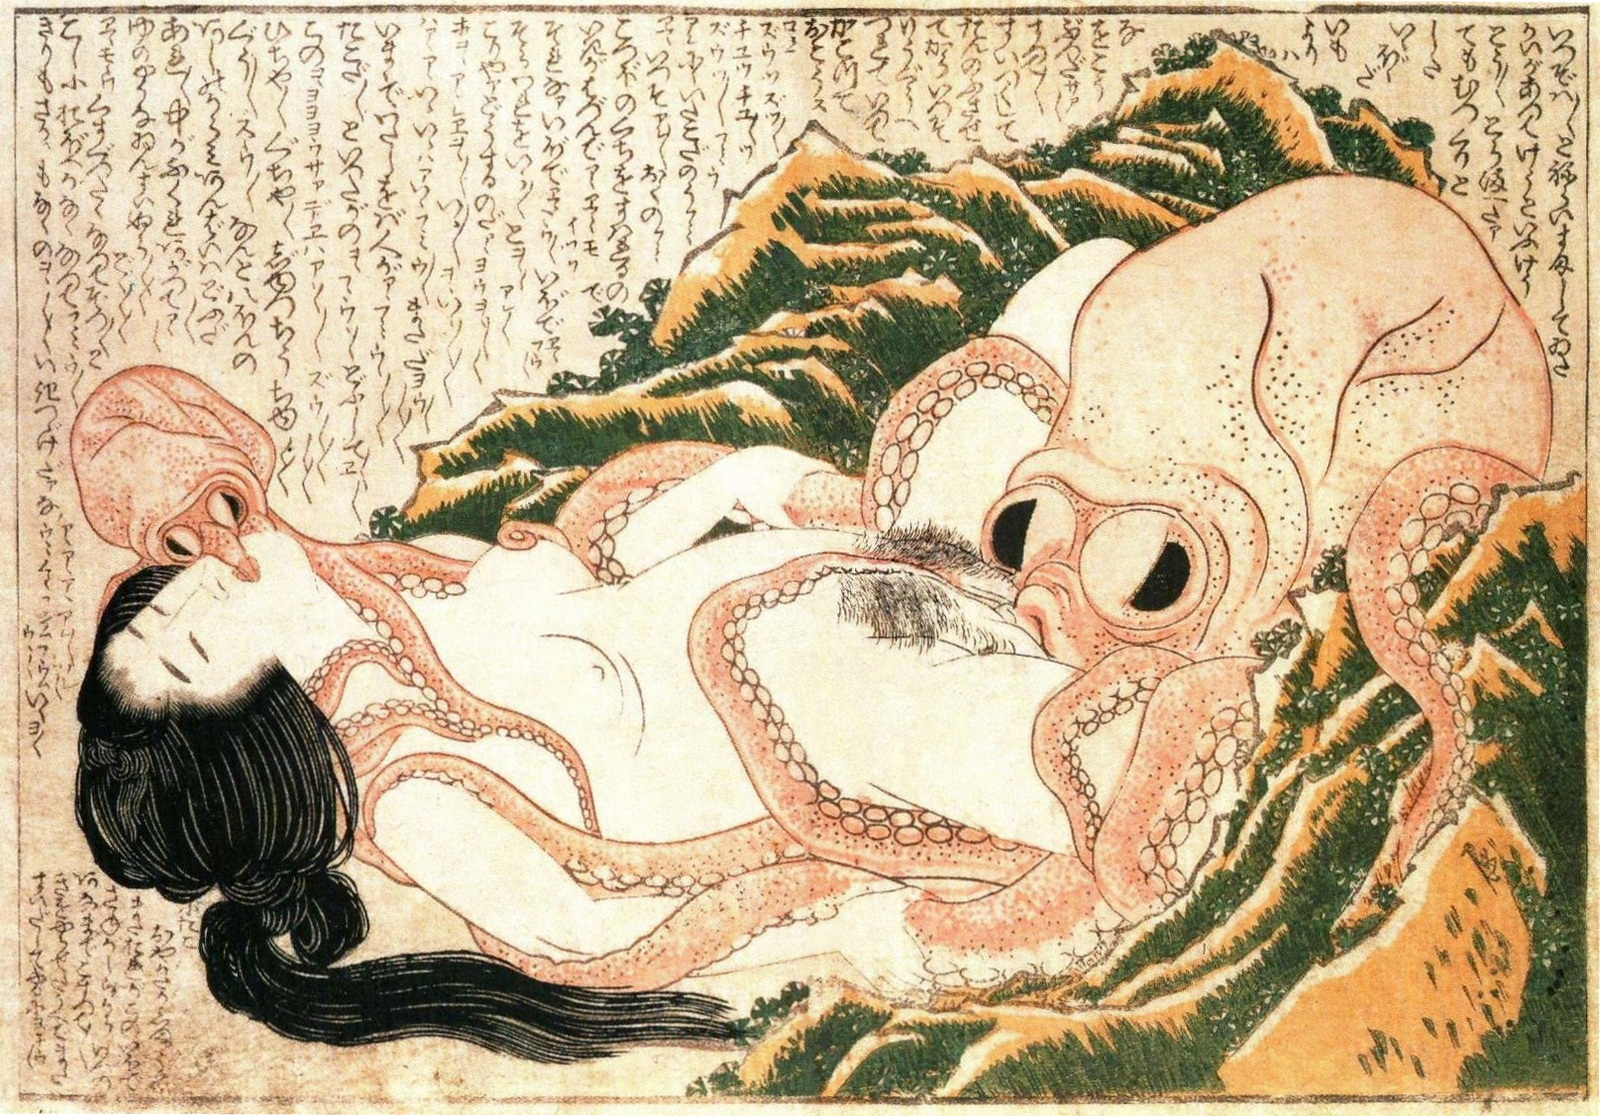 The Dream of the Fisherman's Wife (Hokusai)